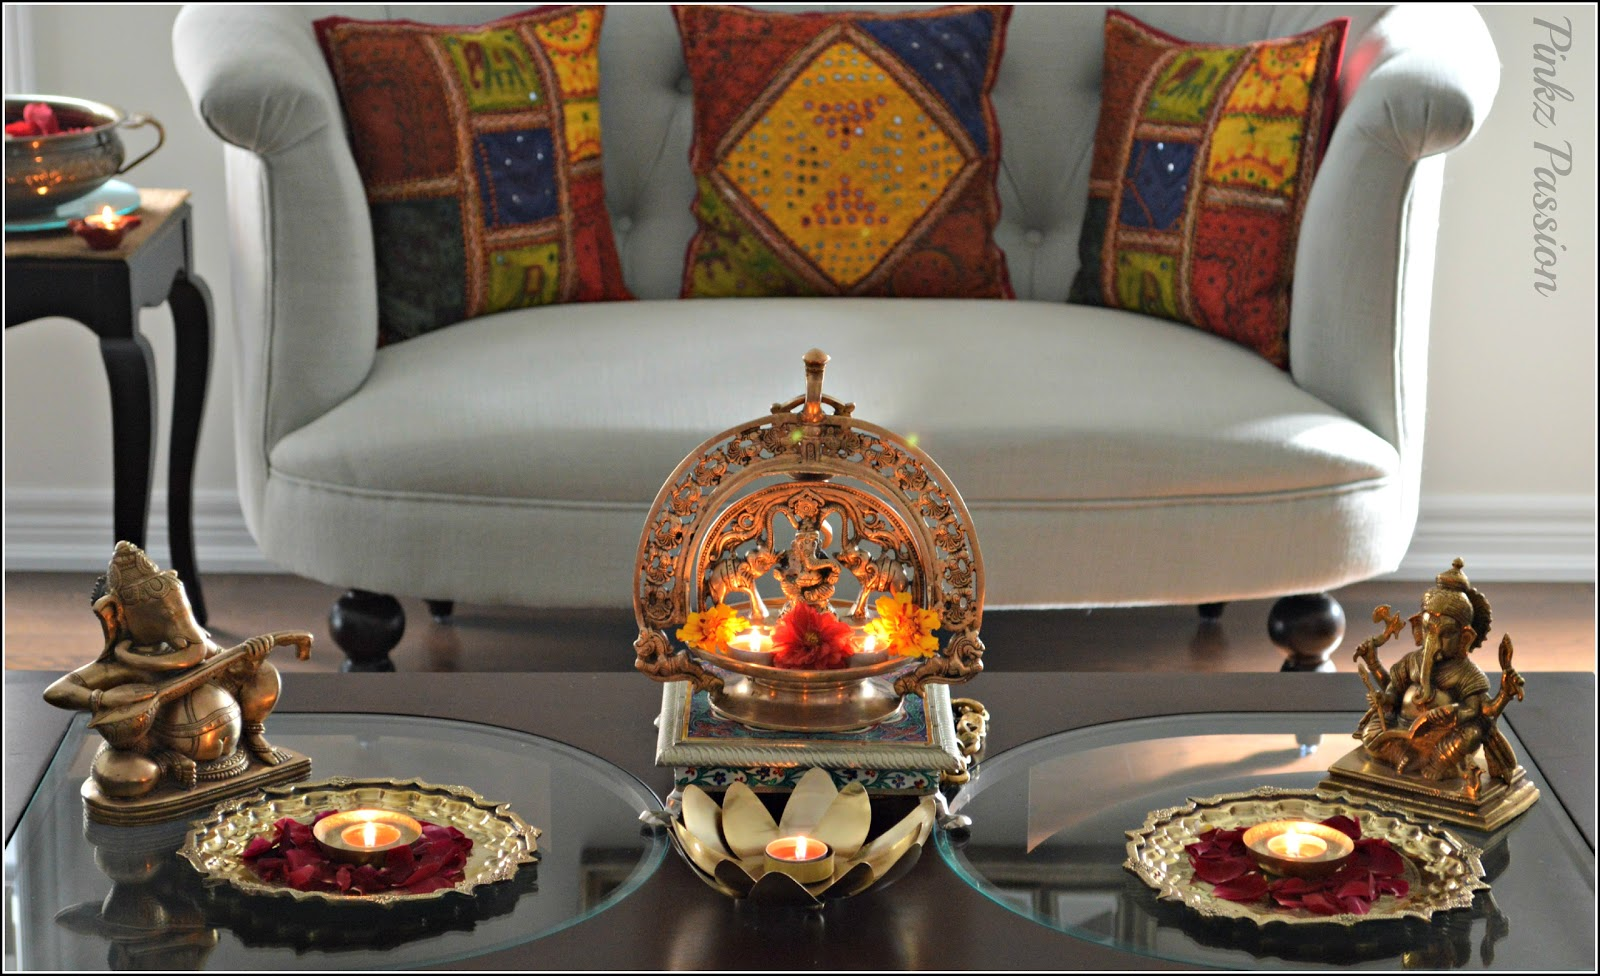 Pinkz passion diwali inspiration 2 home tour for Home decorations on diwali